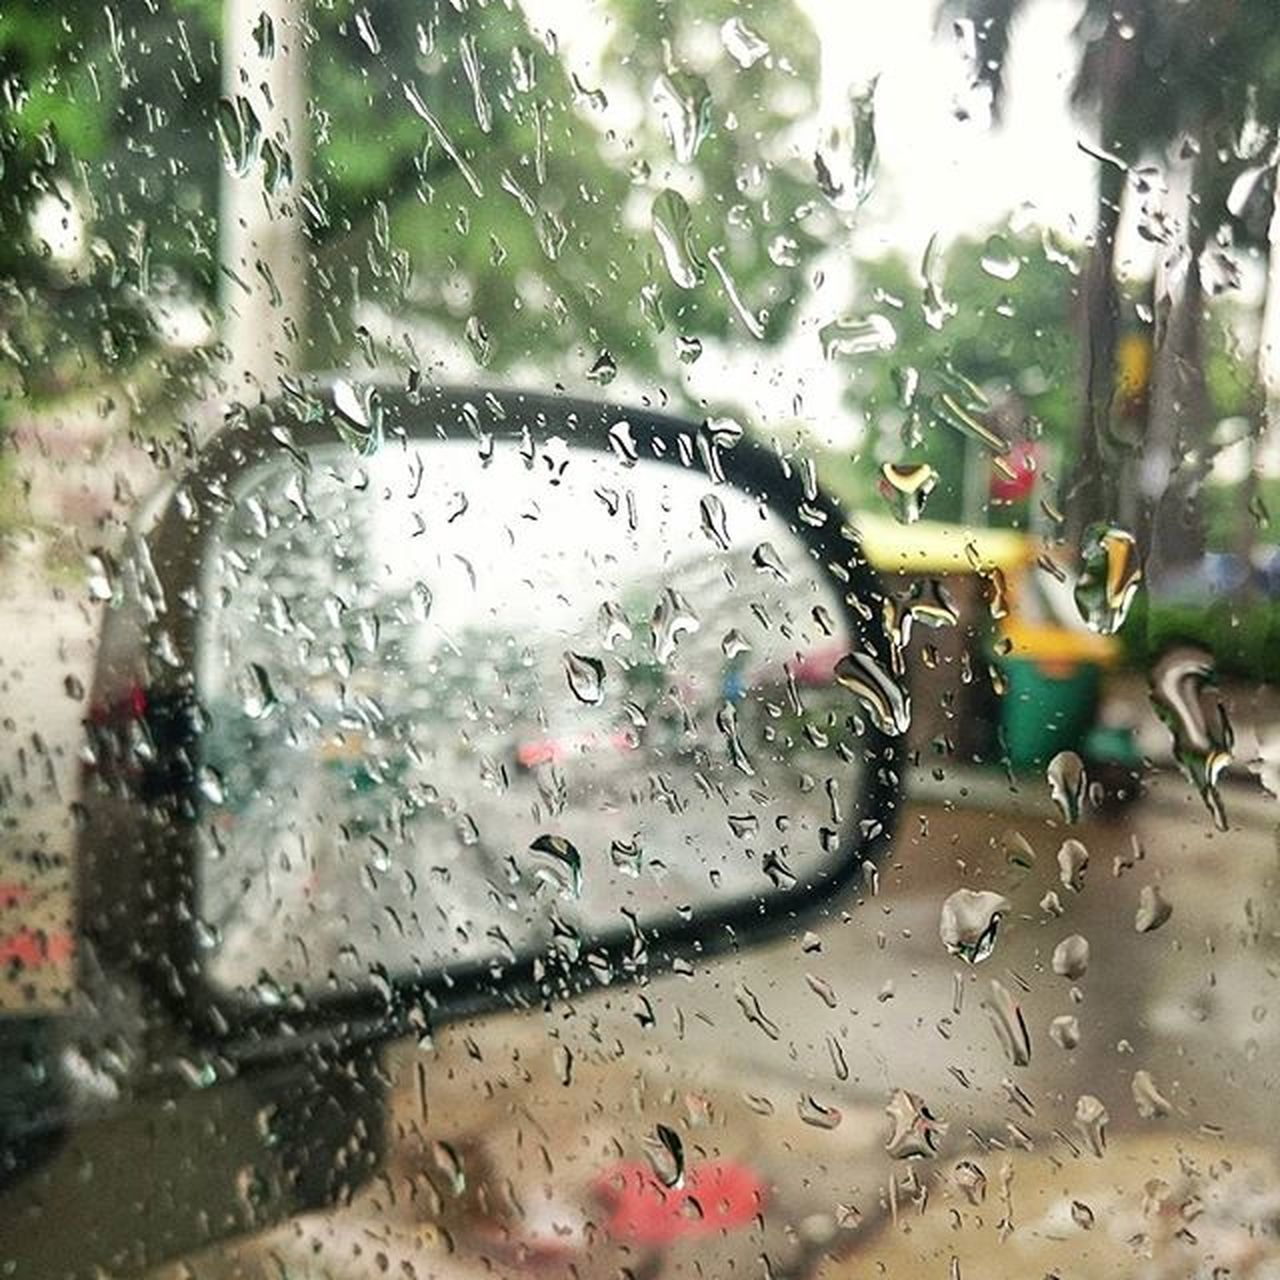 Rain Drive Car Road Drops Droplets Mirror Rearviewmirror Traffic Monsoon Chandigarh Instachd Instachandigarh Showers Xperiaz3photography Xperiaphotography XperiaZ3compact Sonyxperia ICAN Dramatic Angles